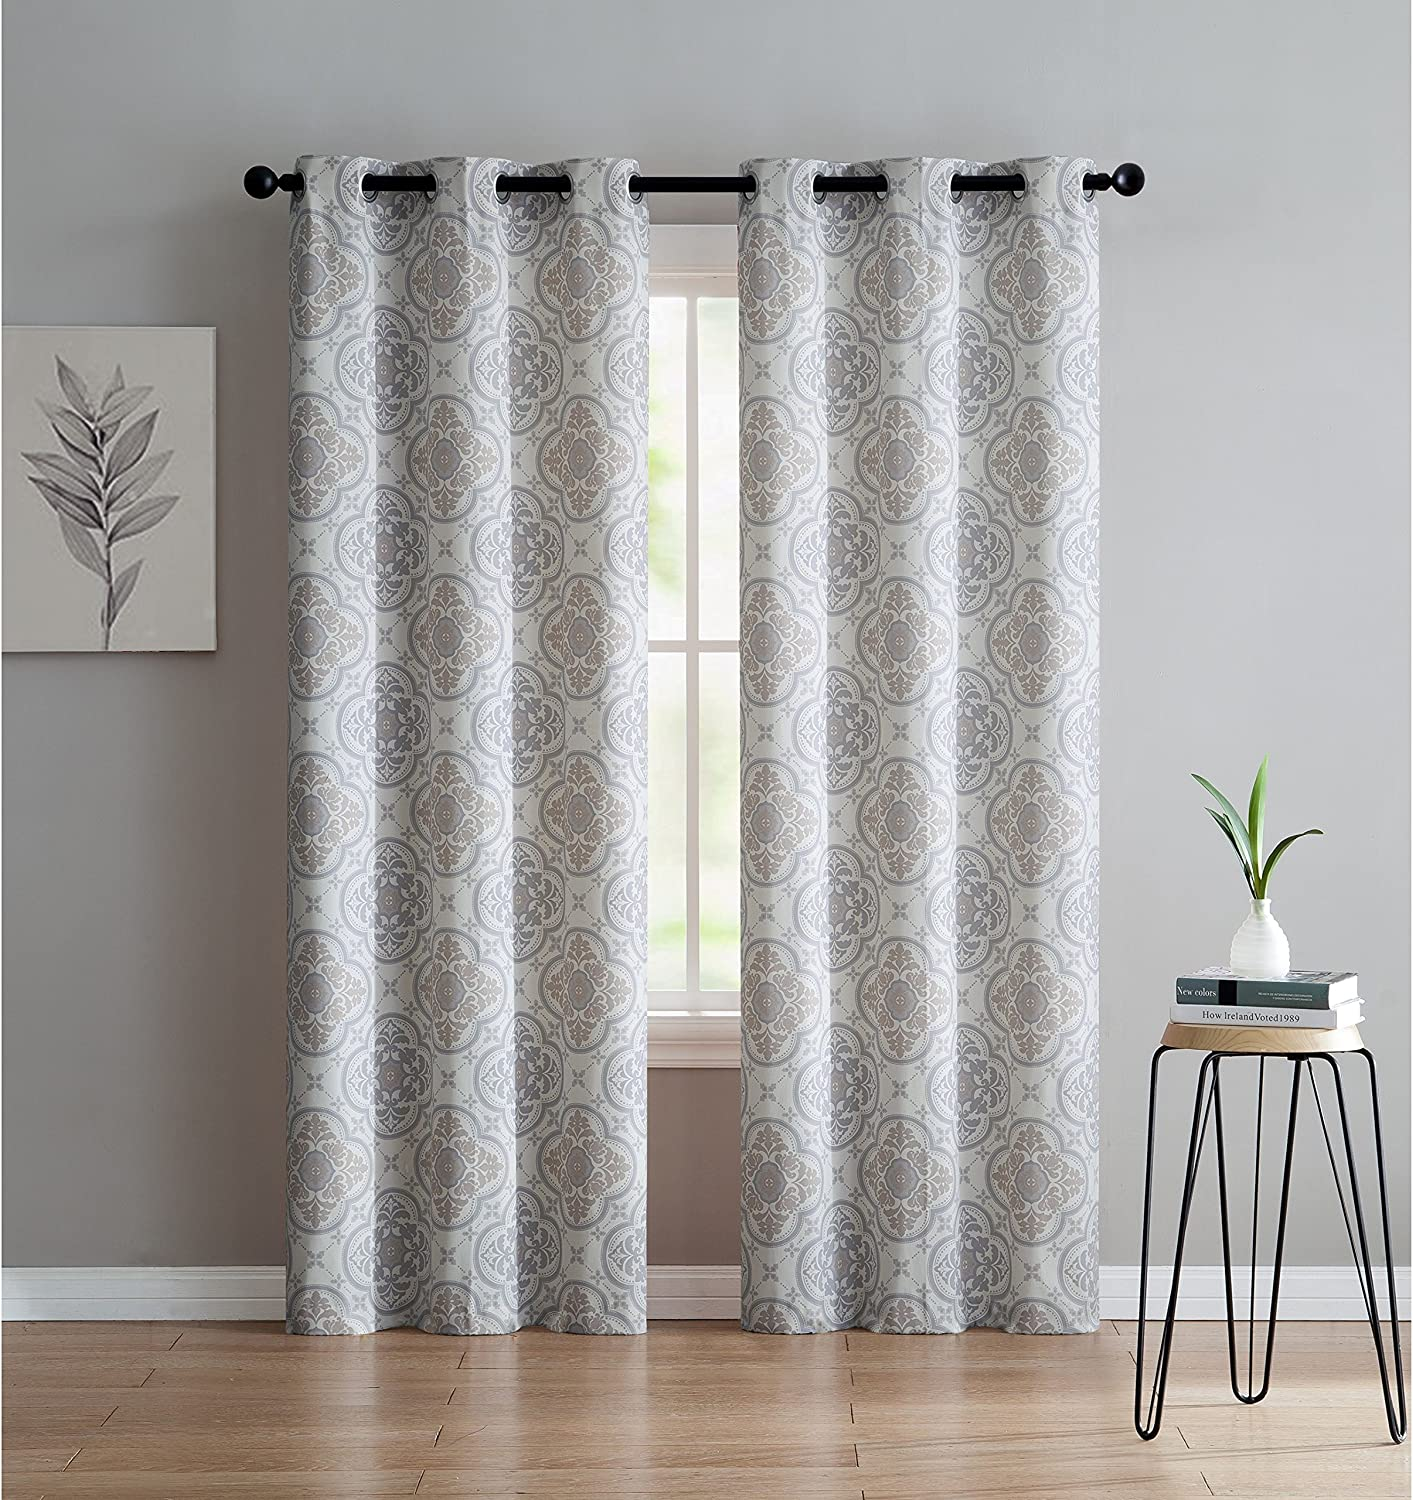 VCNY Home Winsted Window Treatment Curtains 76x84, Silver